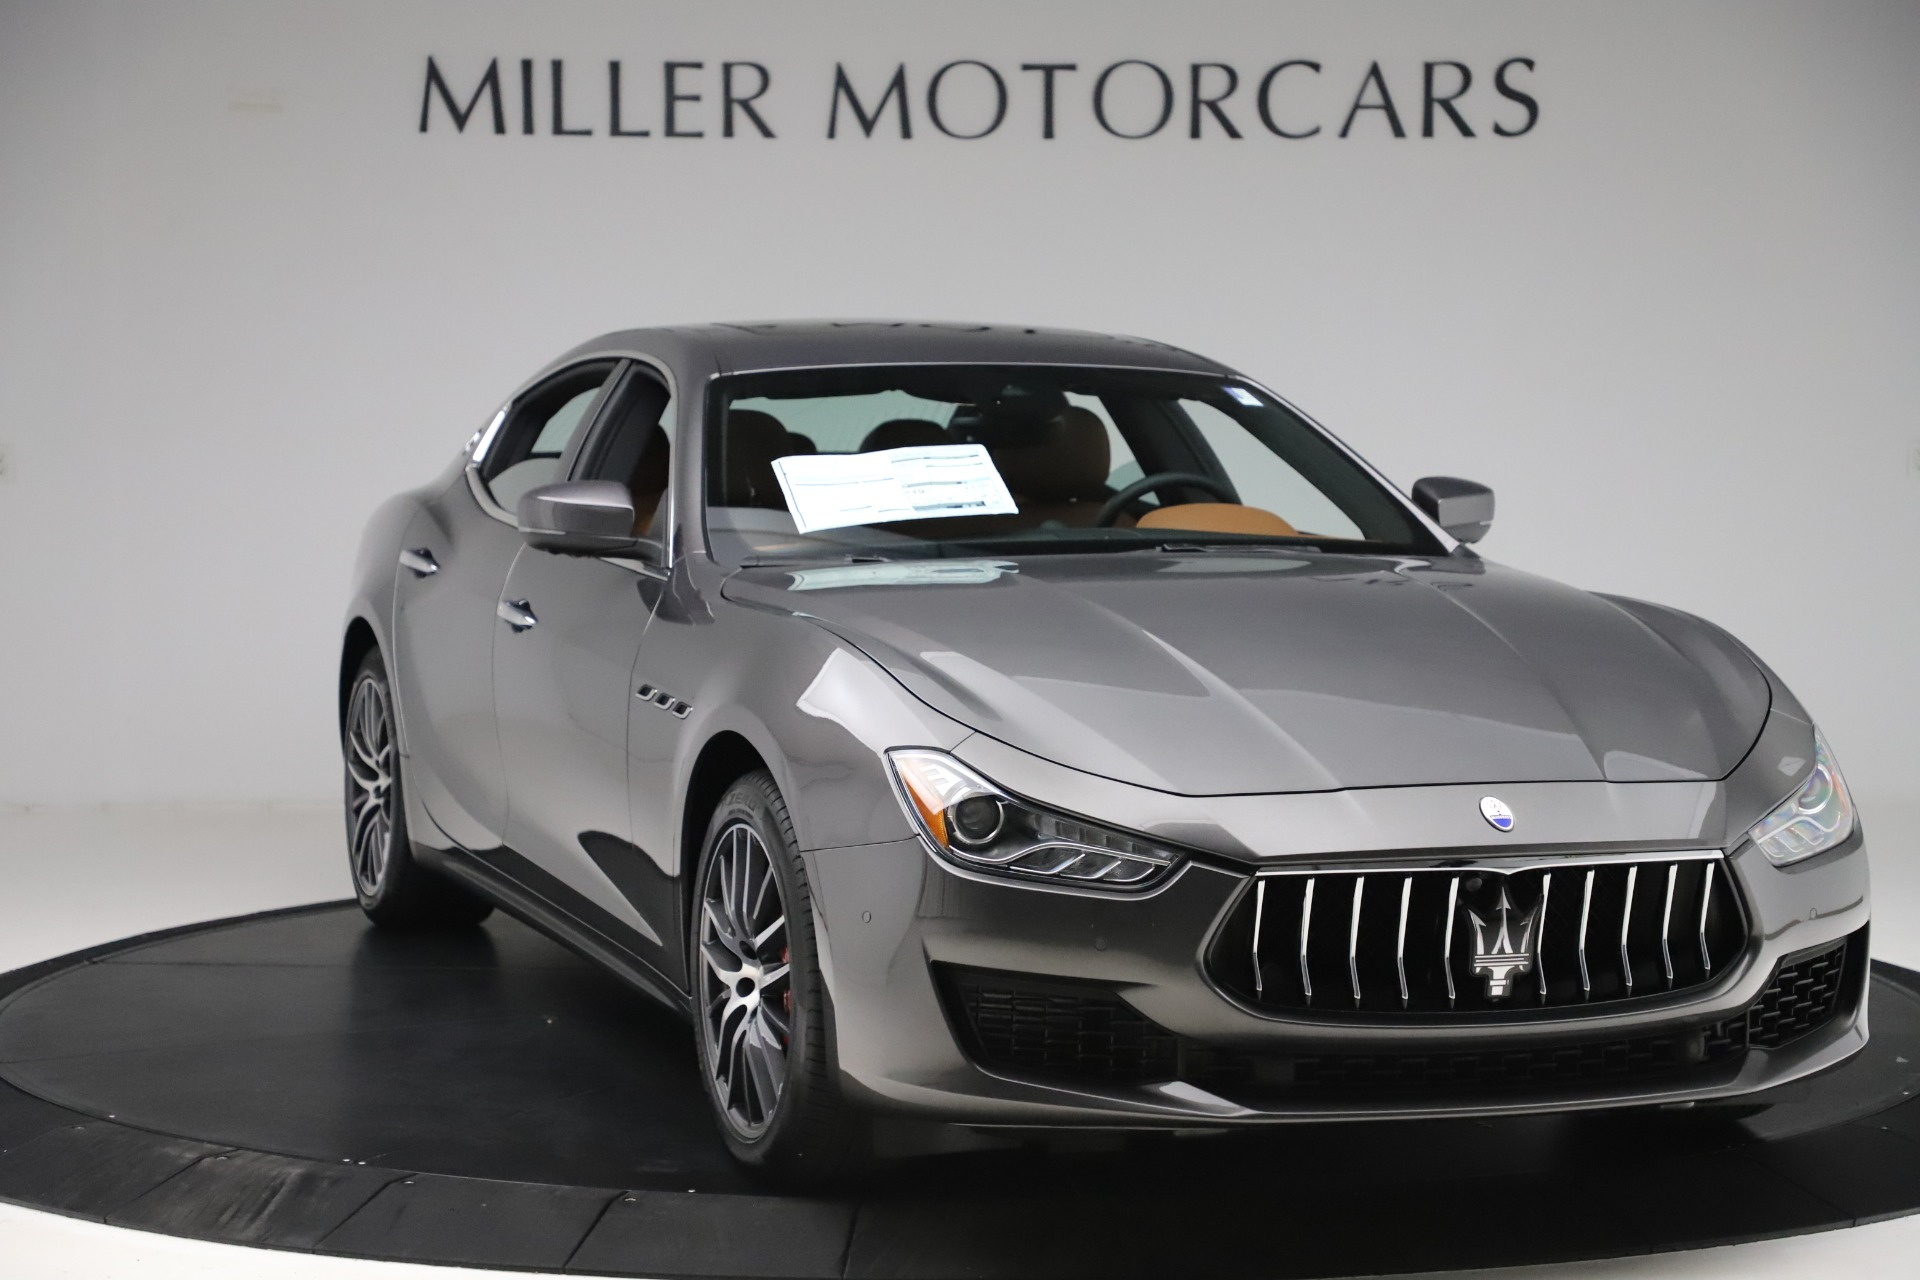 New 2019 Maserati Ghibli S Q4 For Sale In Greenwich, CT 3017_p11